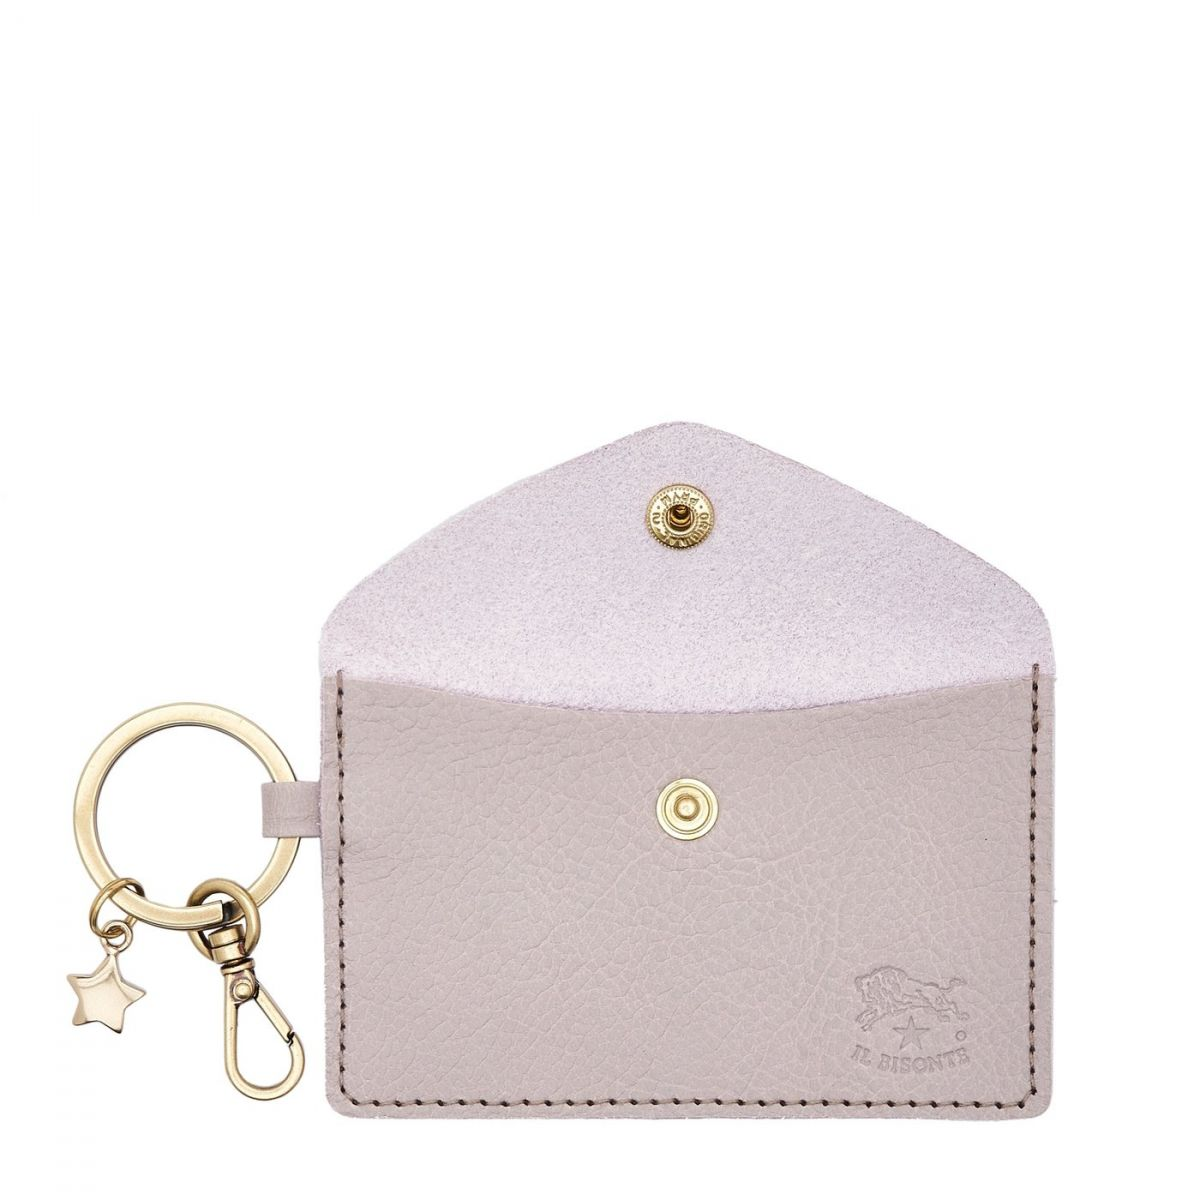 Scarlino - Women's Keyring in Cowhide Leather color Mauve - SKH042 | Details